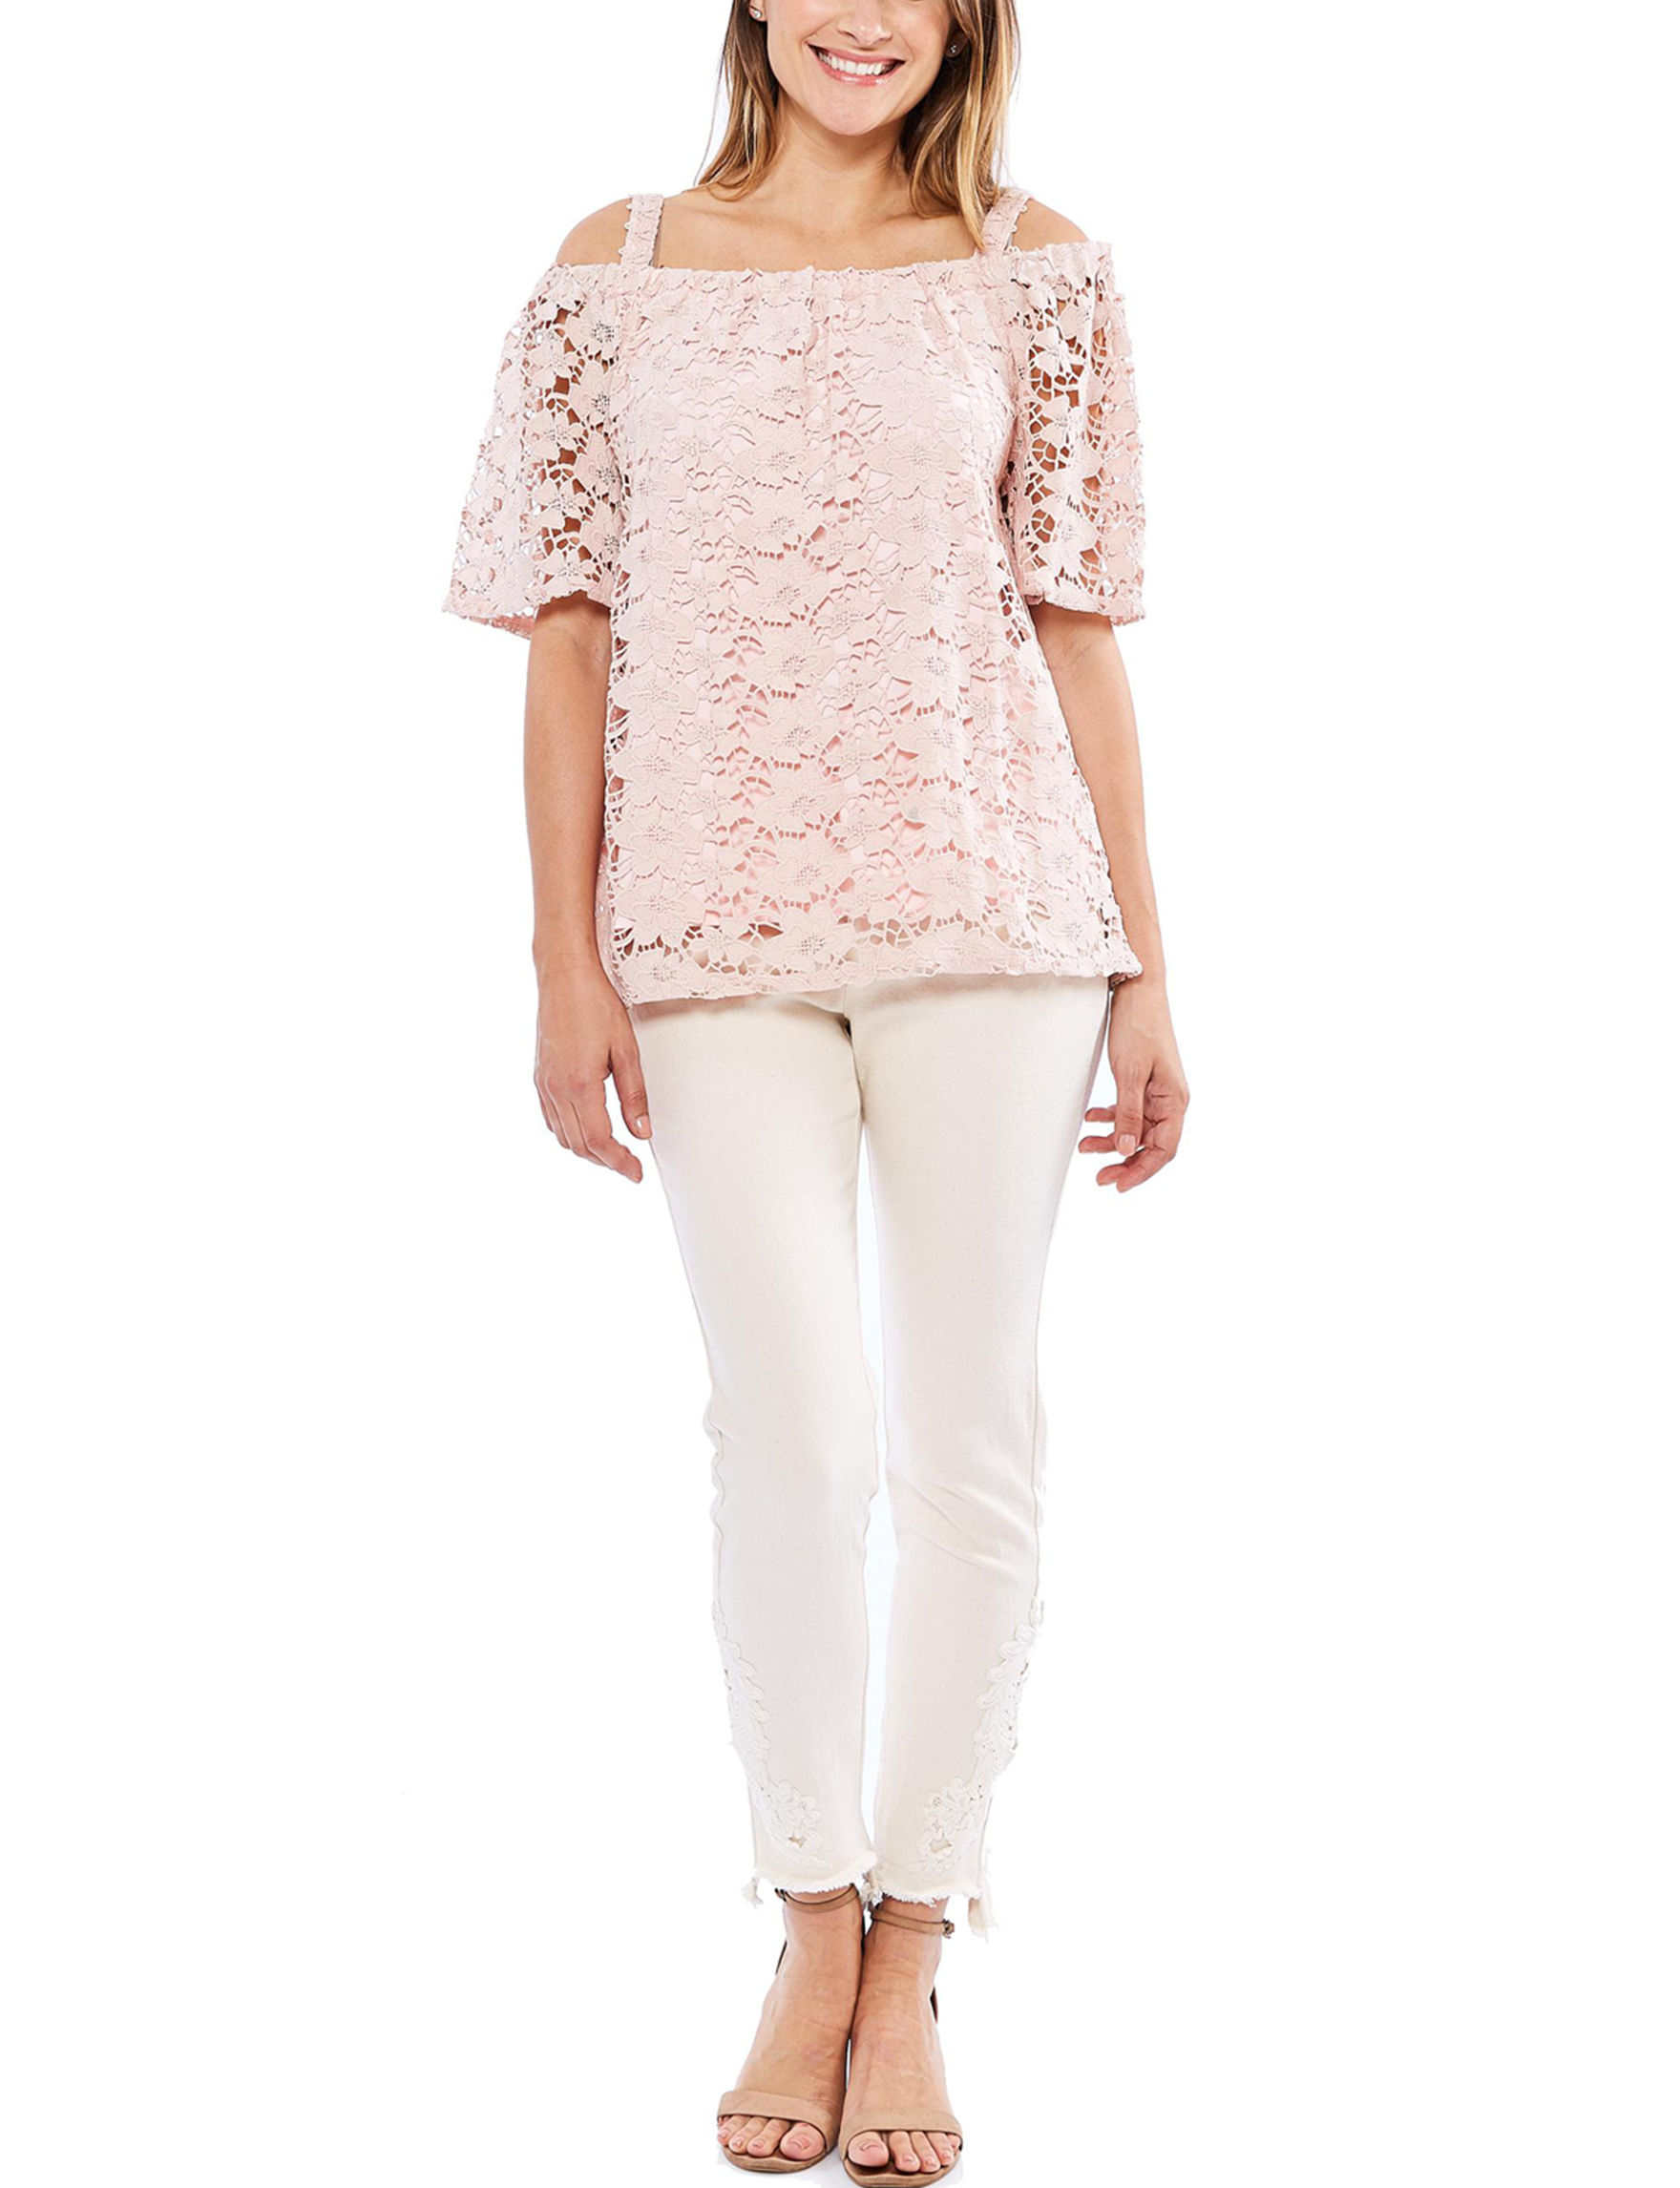 Skyes The Limit Pink Shirts & Blouses